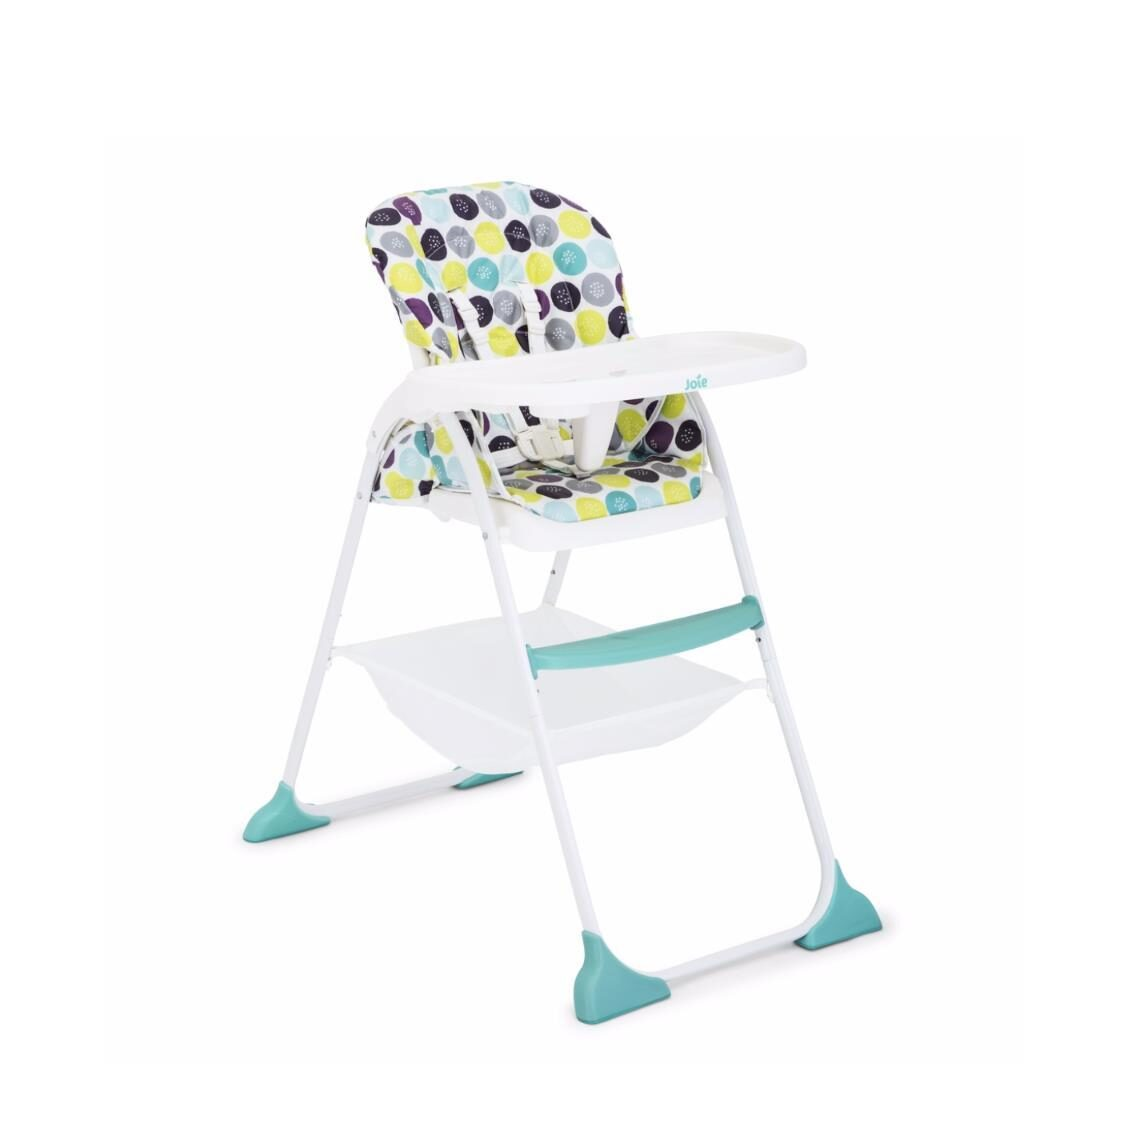 Mimzy Snacker HighchairOne hand fold Compact 3 position seat recline